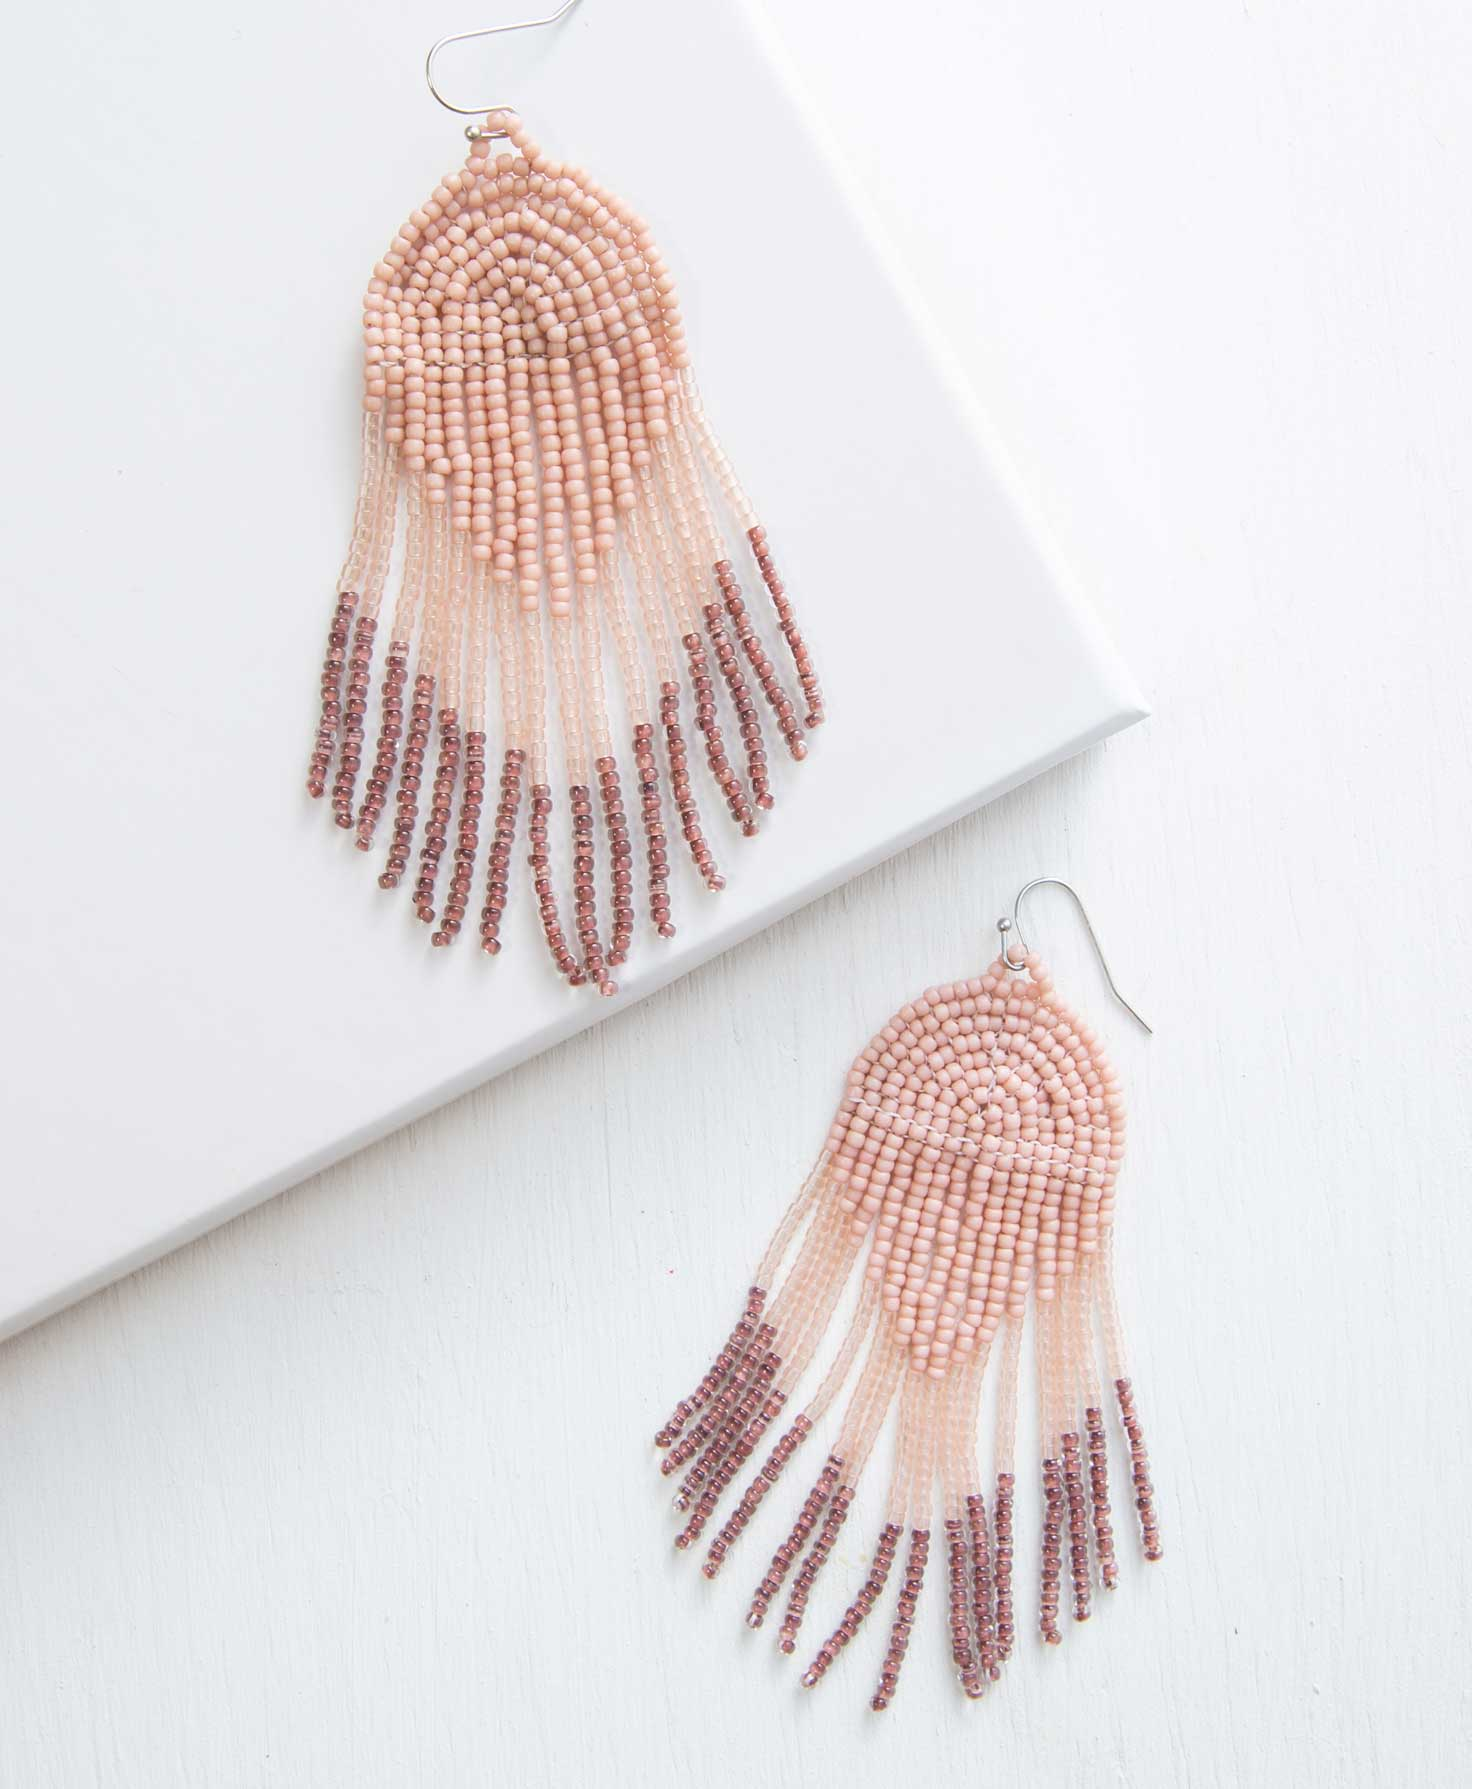 beaded pink earrings on a white surface